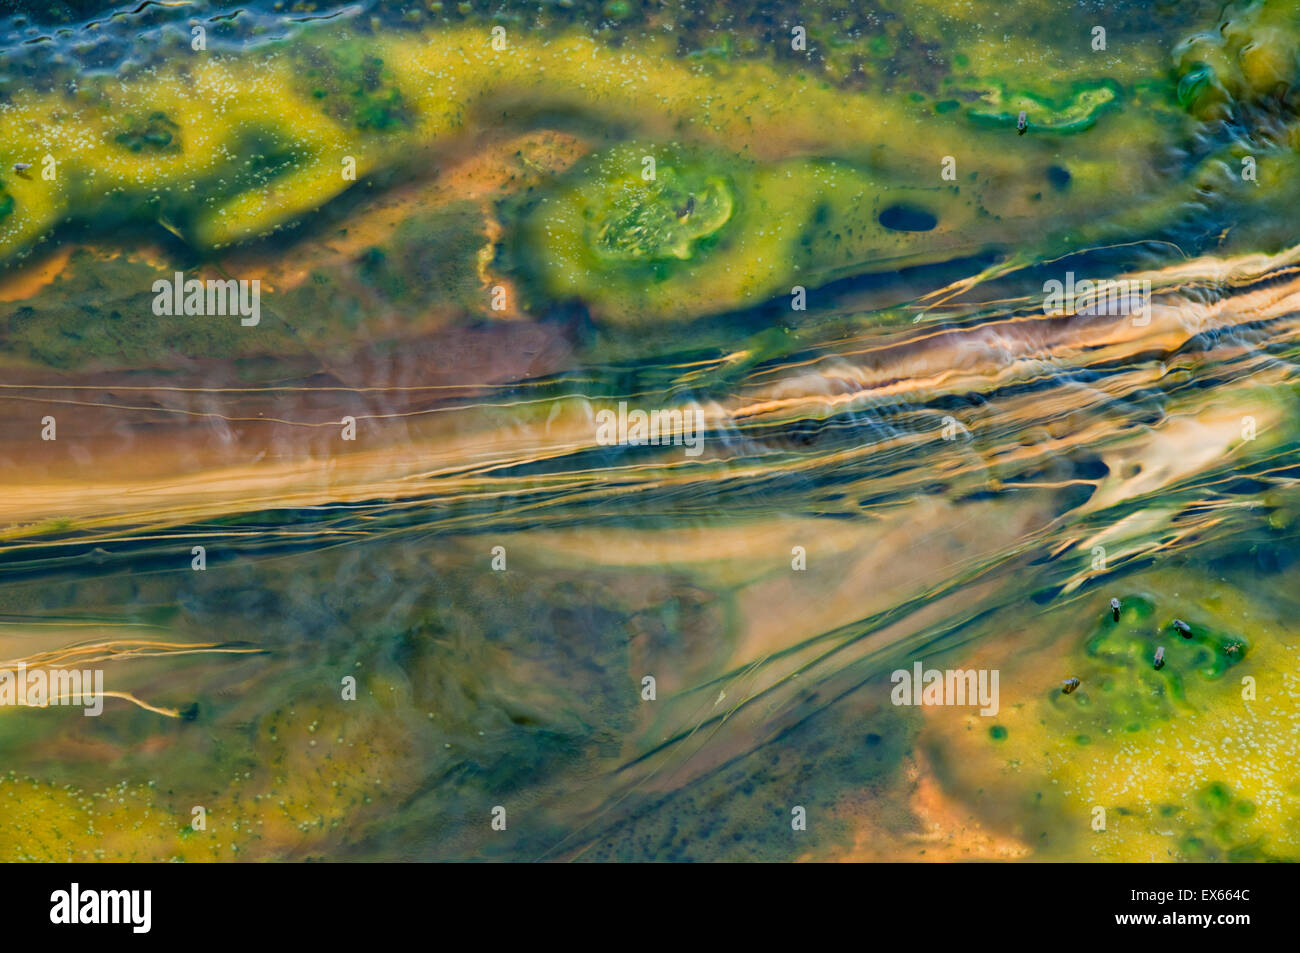 Algae and thermophilic microorganisms in hot springs in the Upper Geyser Basin in Yellowstone National Park WY - Stock Image